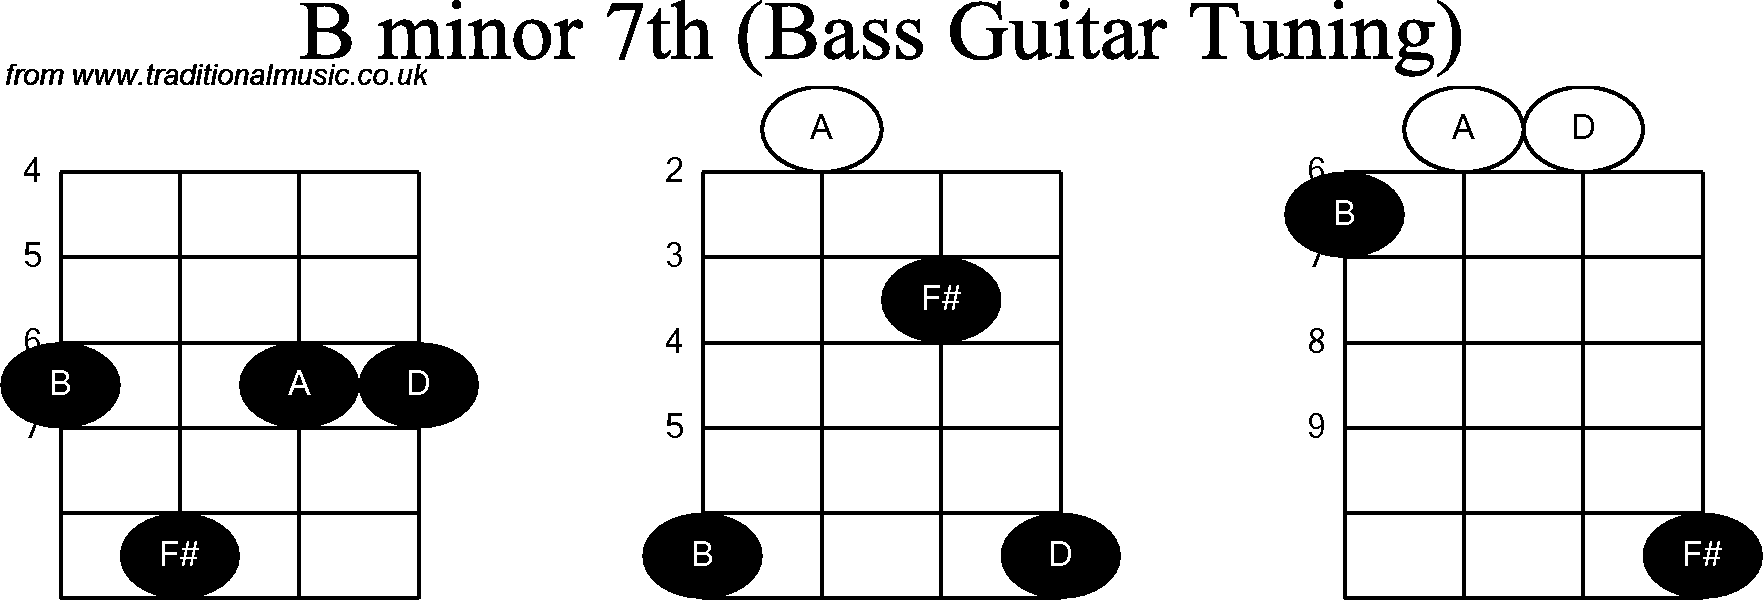 Bass Guitar Chord Diagrams For B Minor 7th